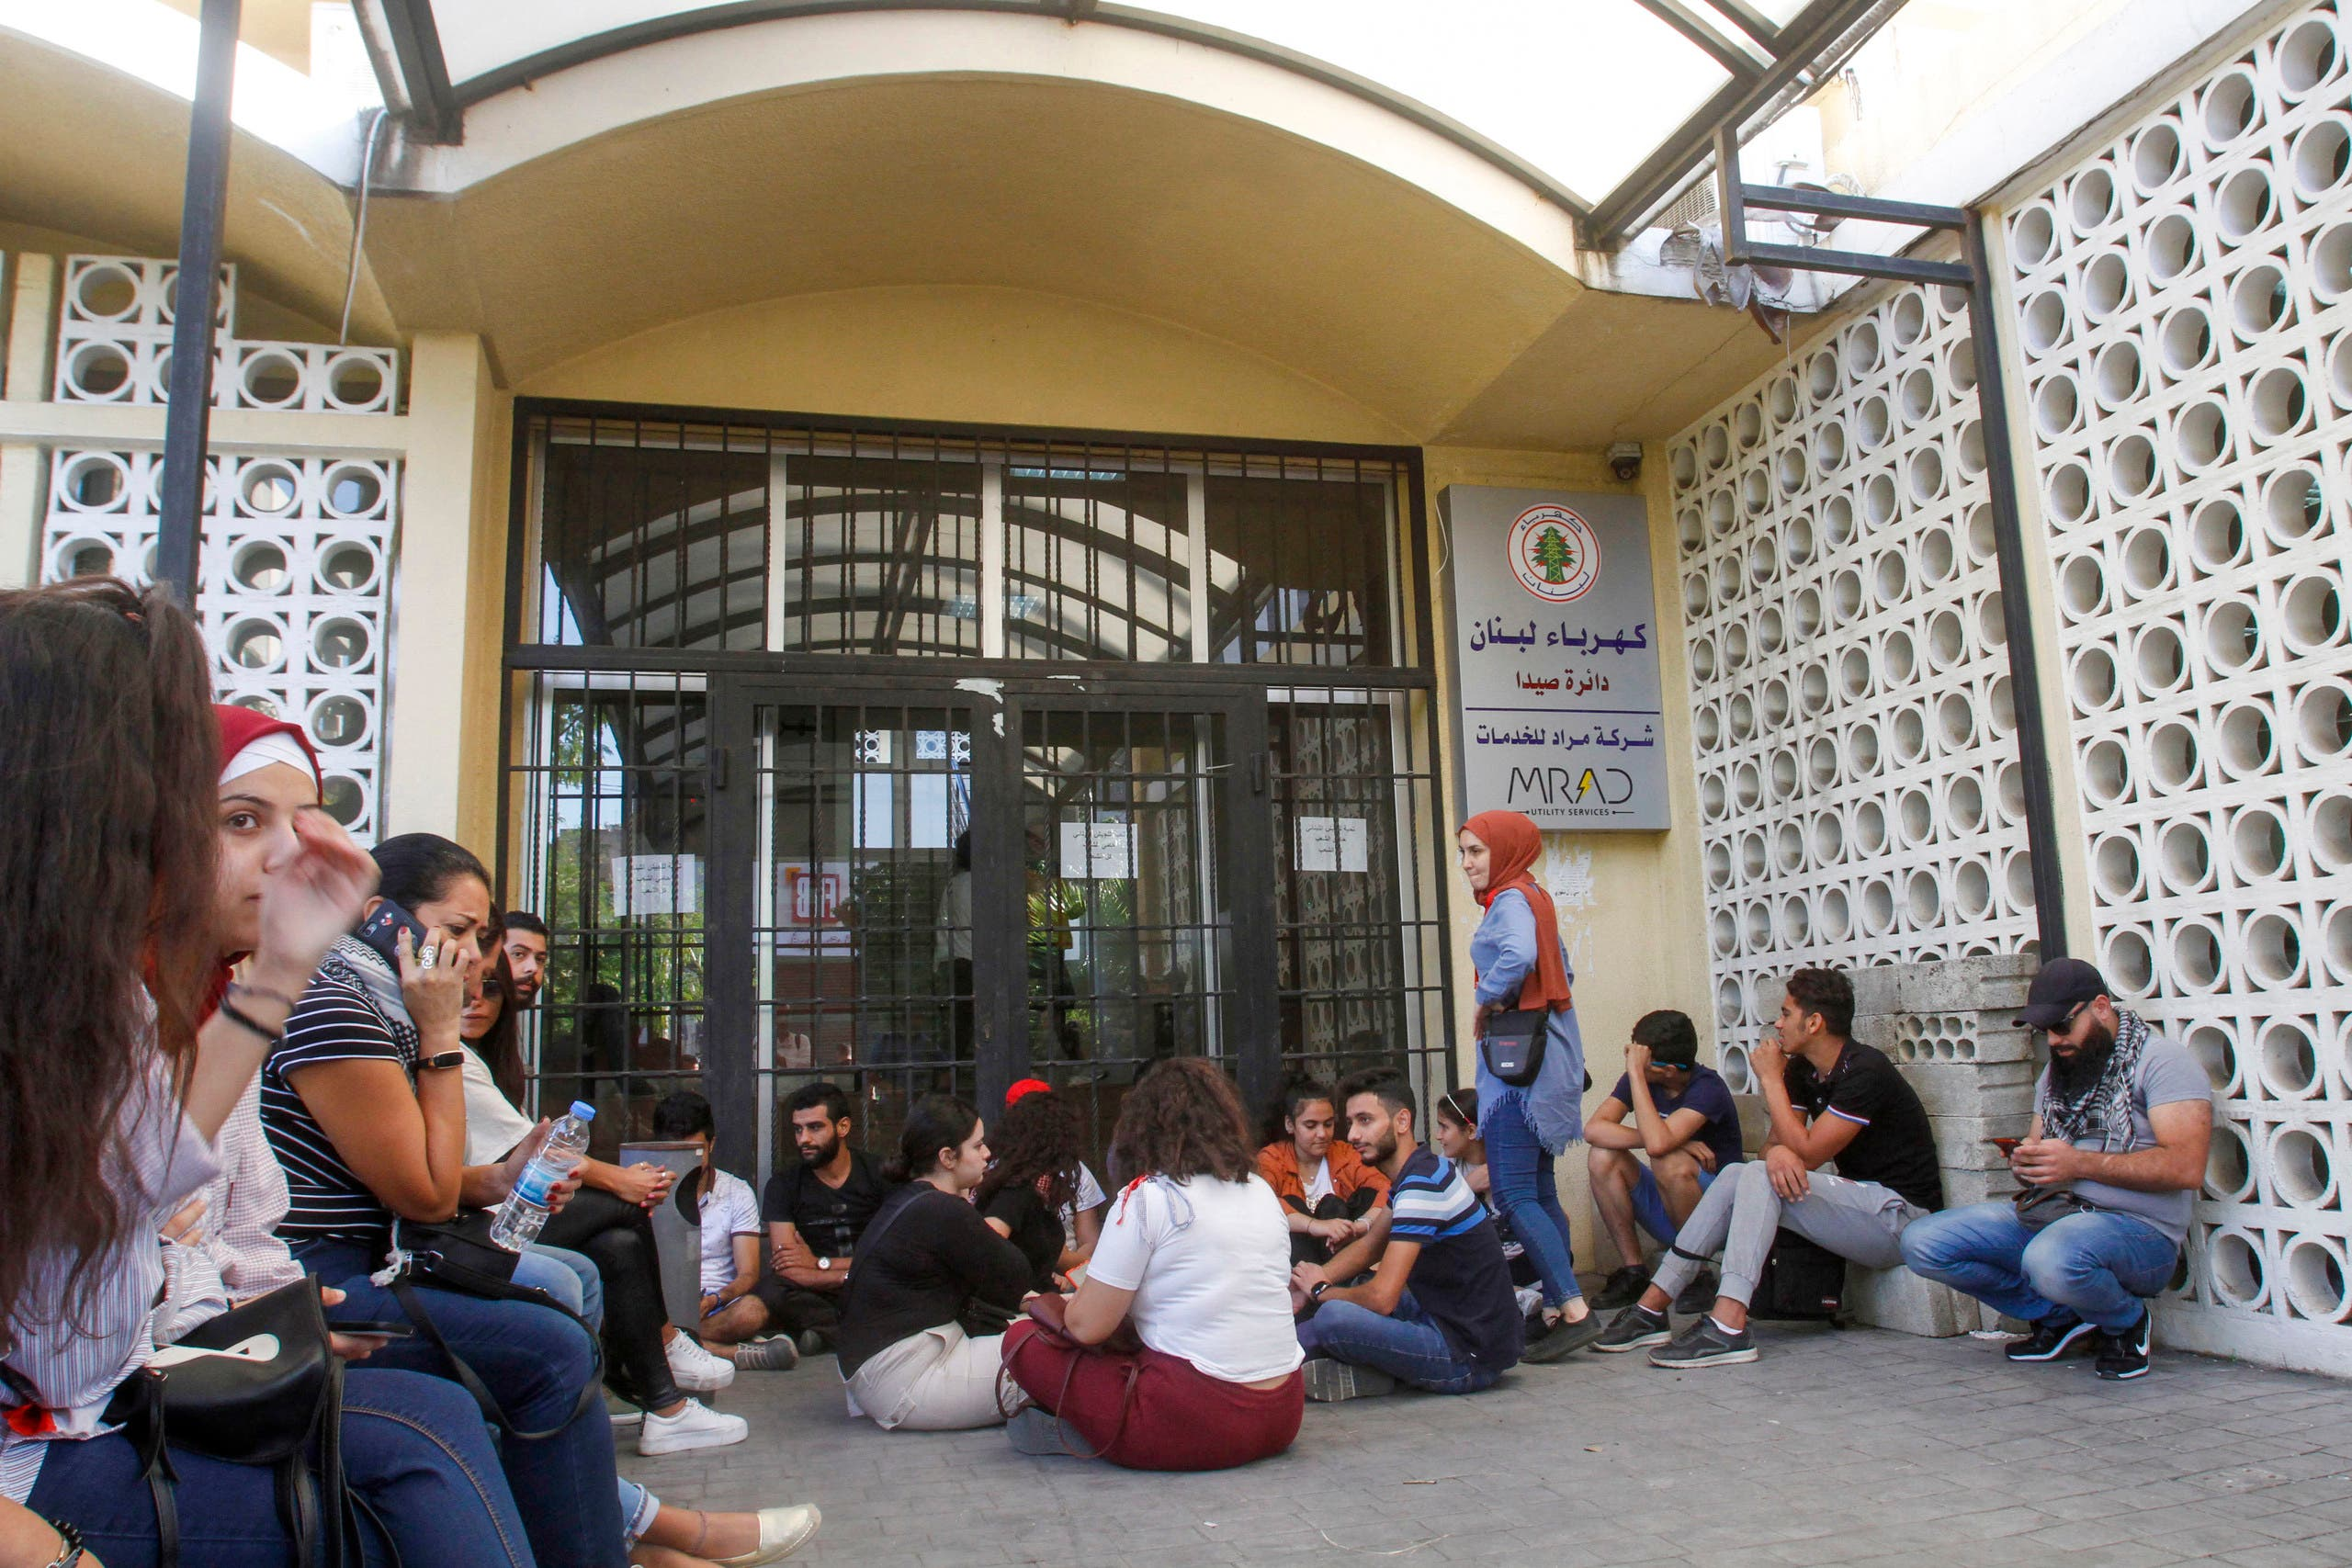 Lebanese demonstrators block the entrance of the electricity company in the southern city of Sidon (Saida) on November 12, 2019, during ongoing anti-government demonstrations. (AFP)